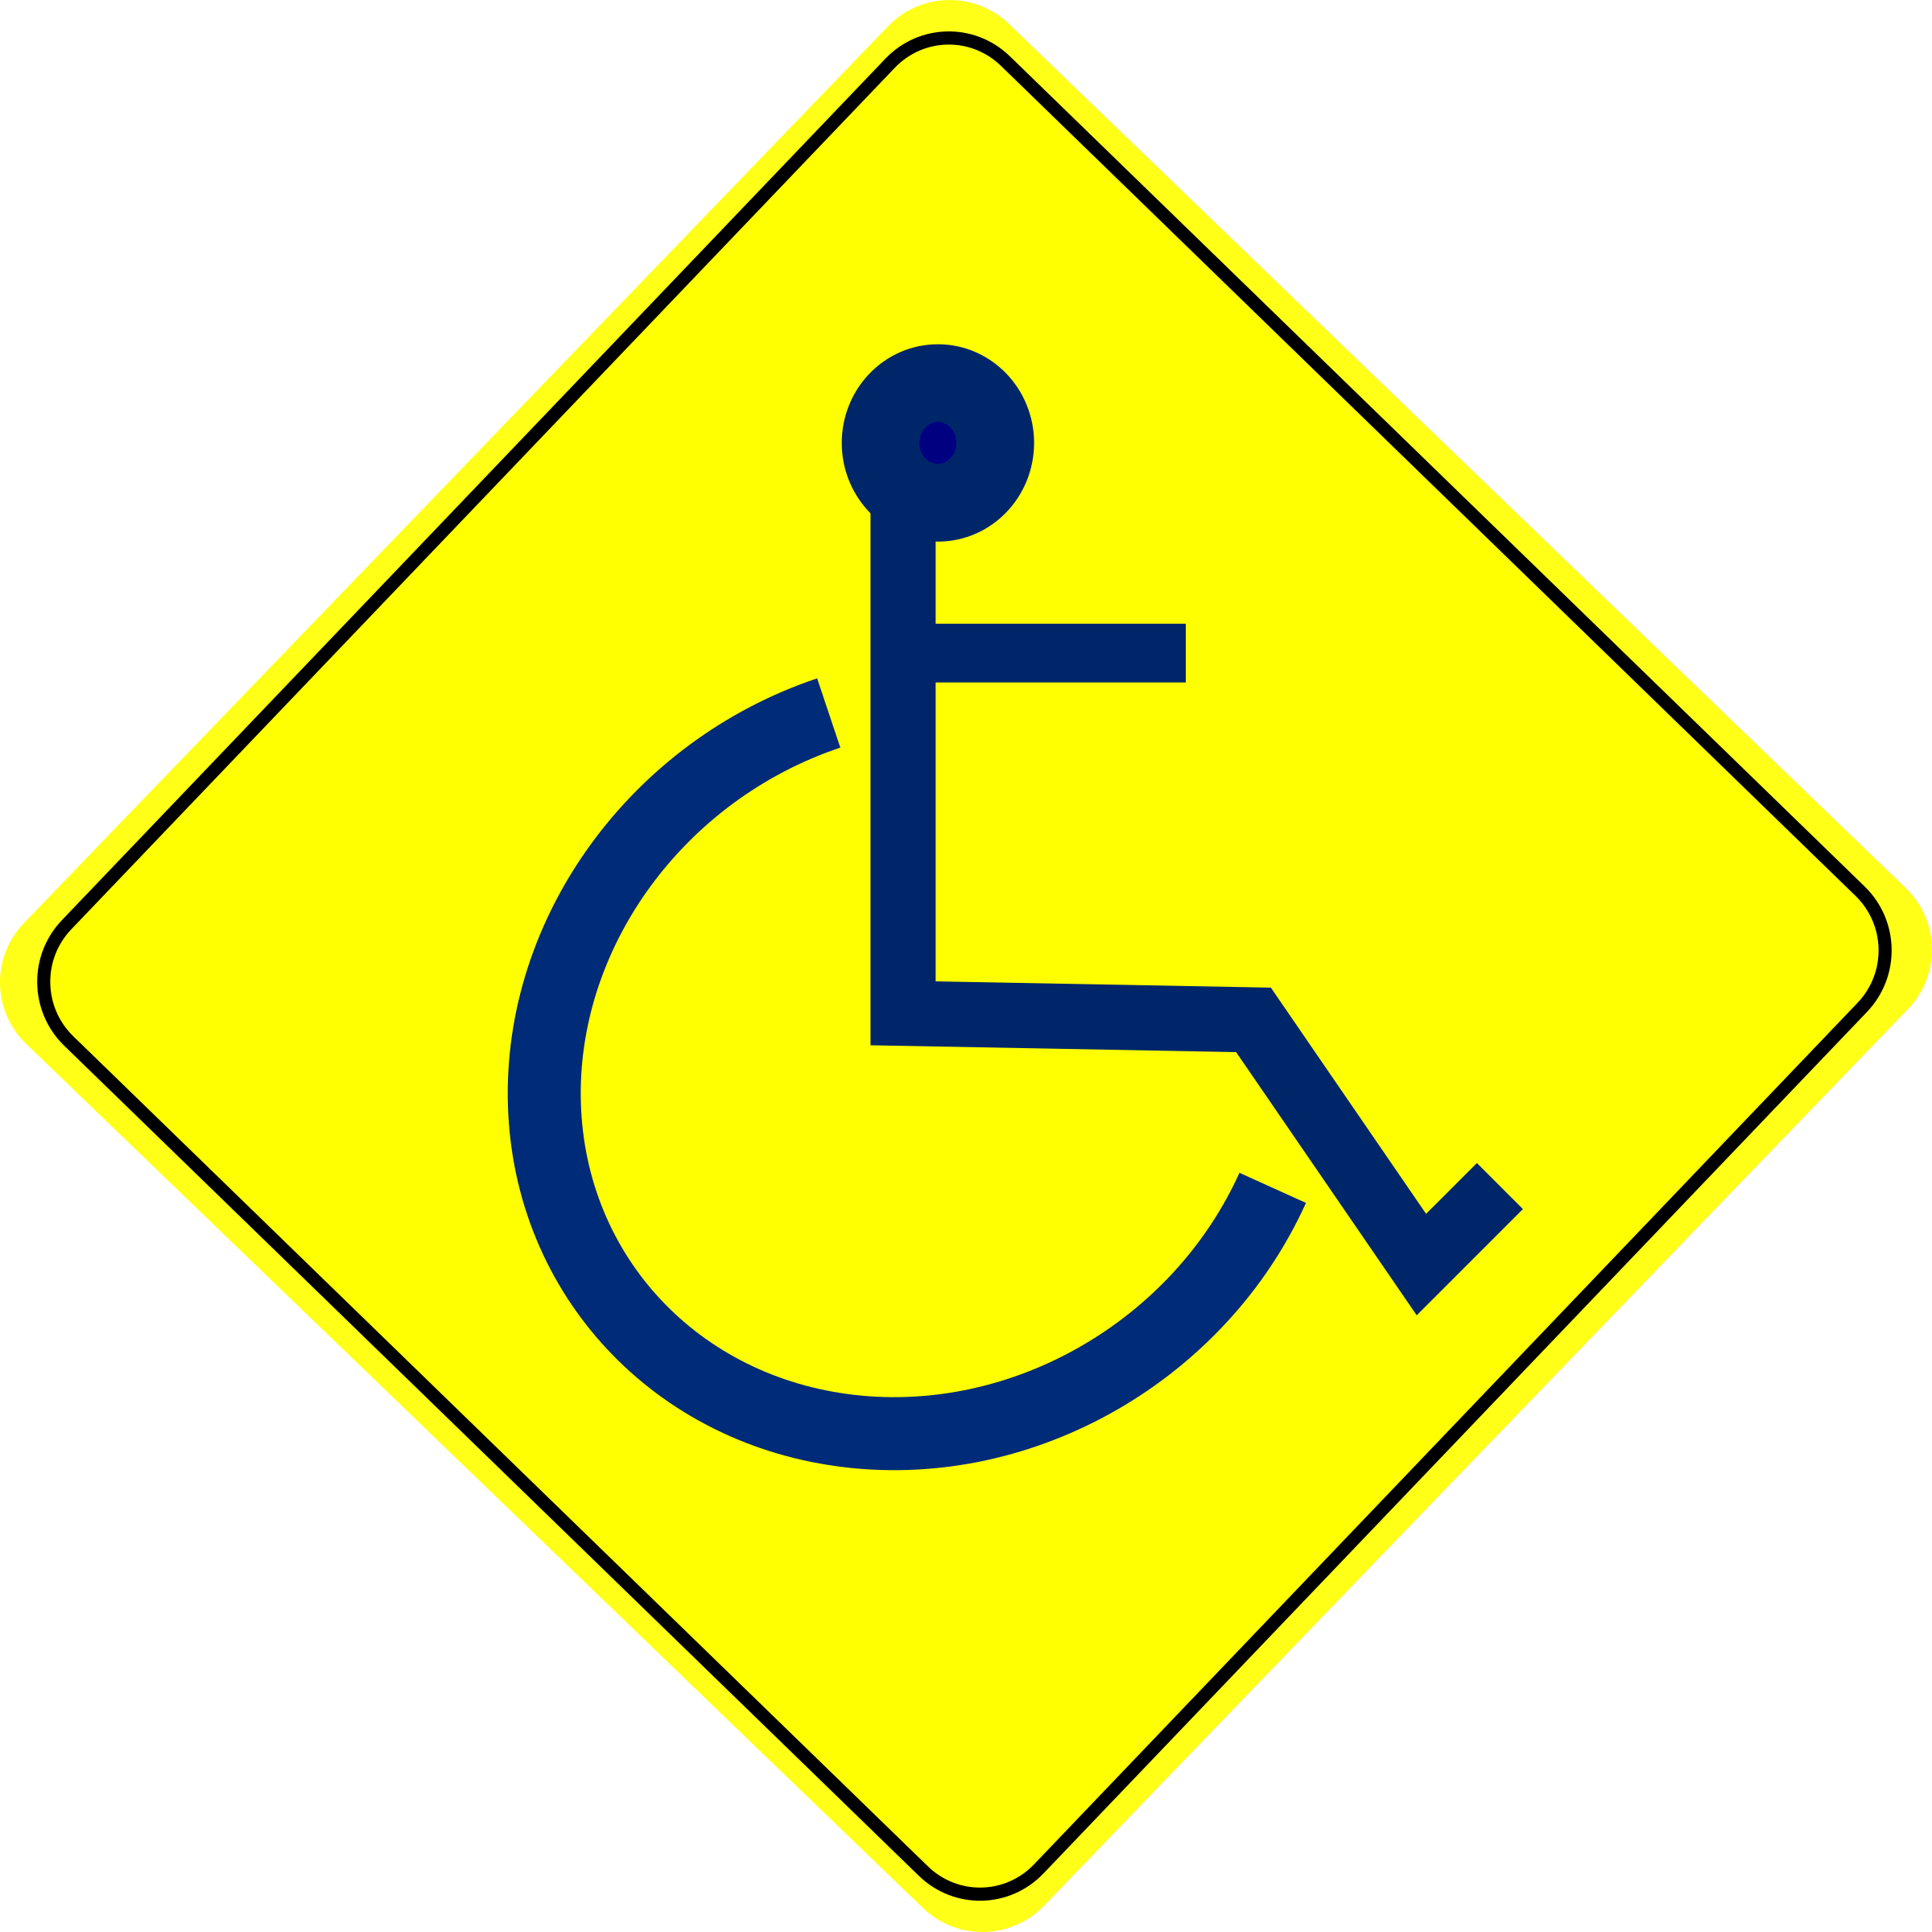 Wheelchair Caution Sign Blue - Free Clipart Icon Download by schoolfreeware